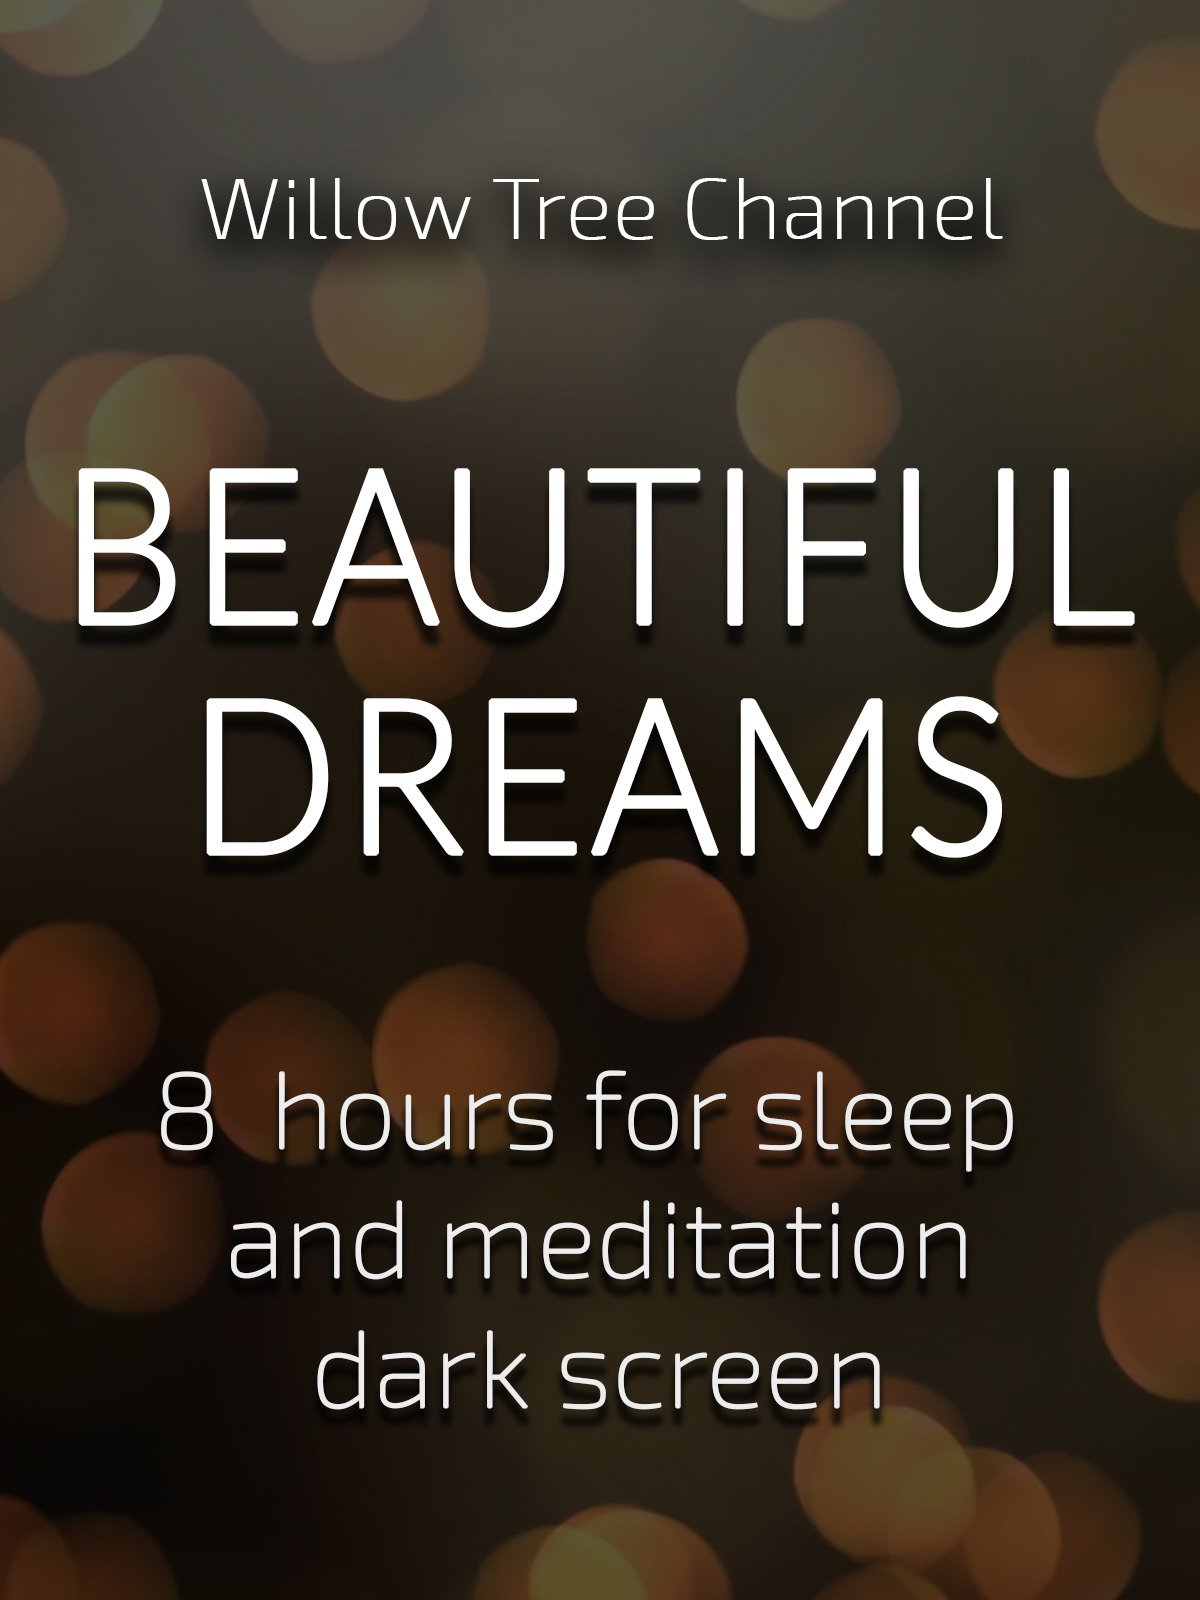 Beautiful dreams, 8 hours for Sleep and Meditation, dark screen